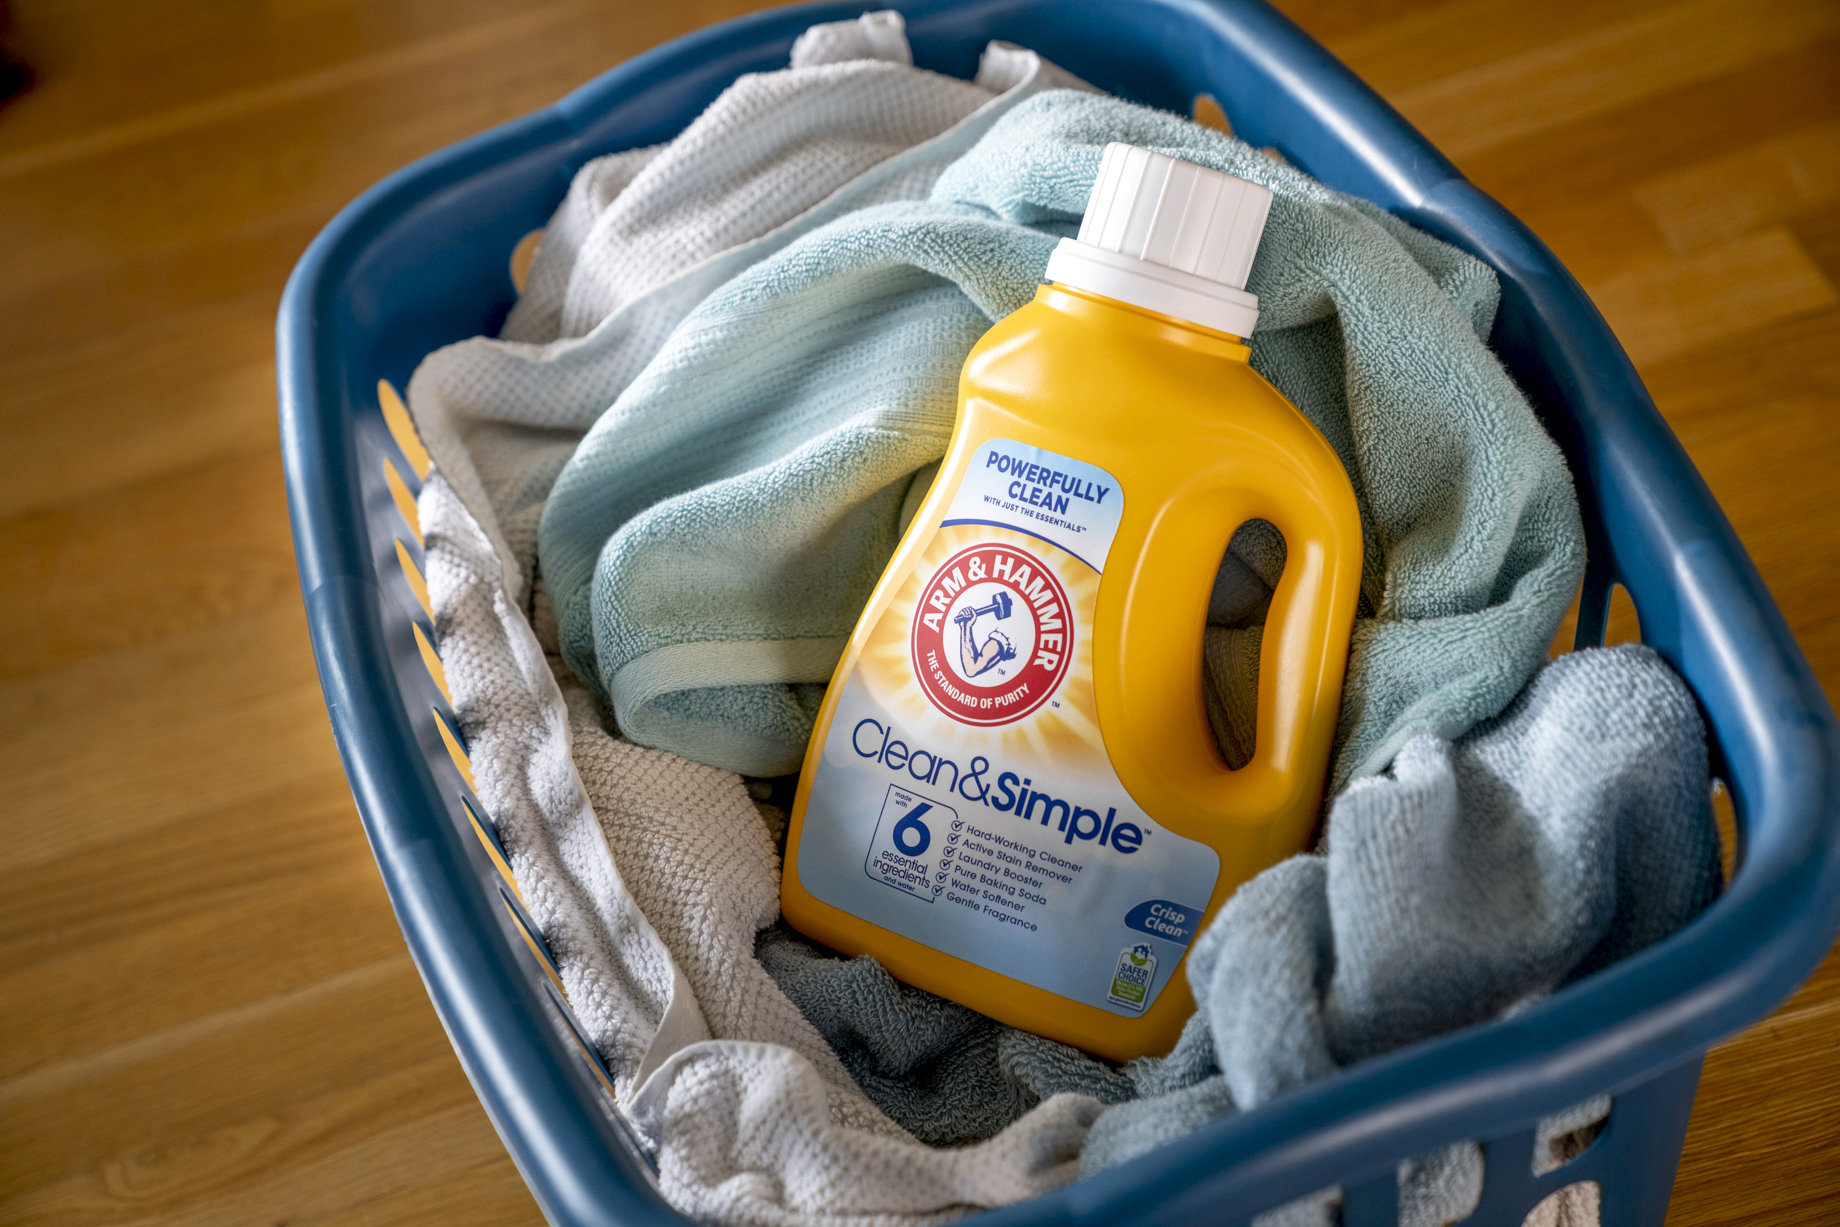 A basket of freshly laundered towels and Arm and Hammer detergent shot by Inti St. Clair